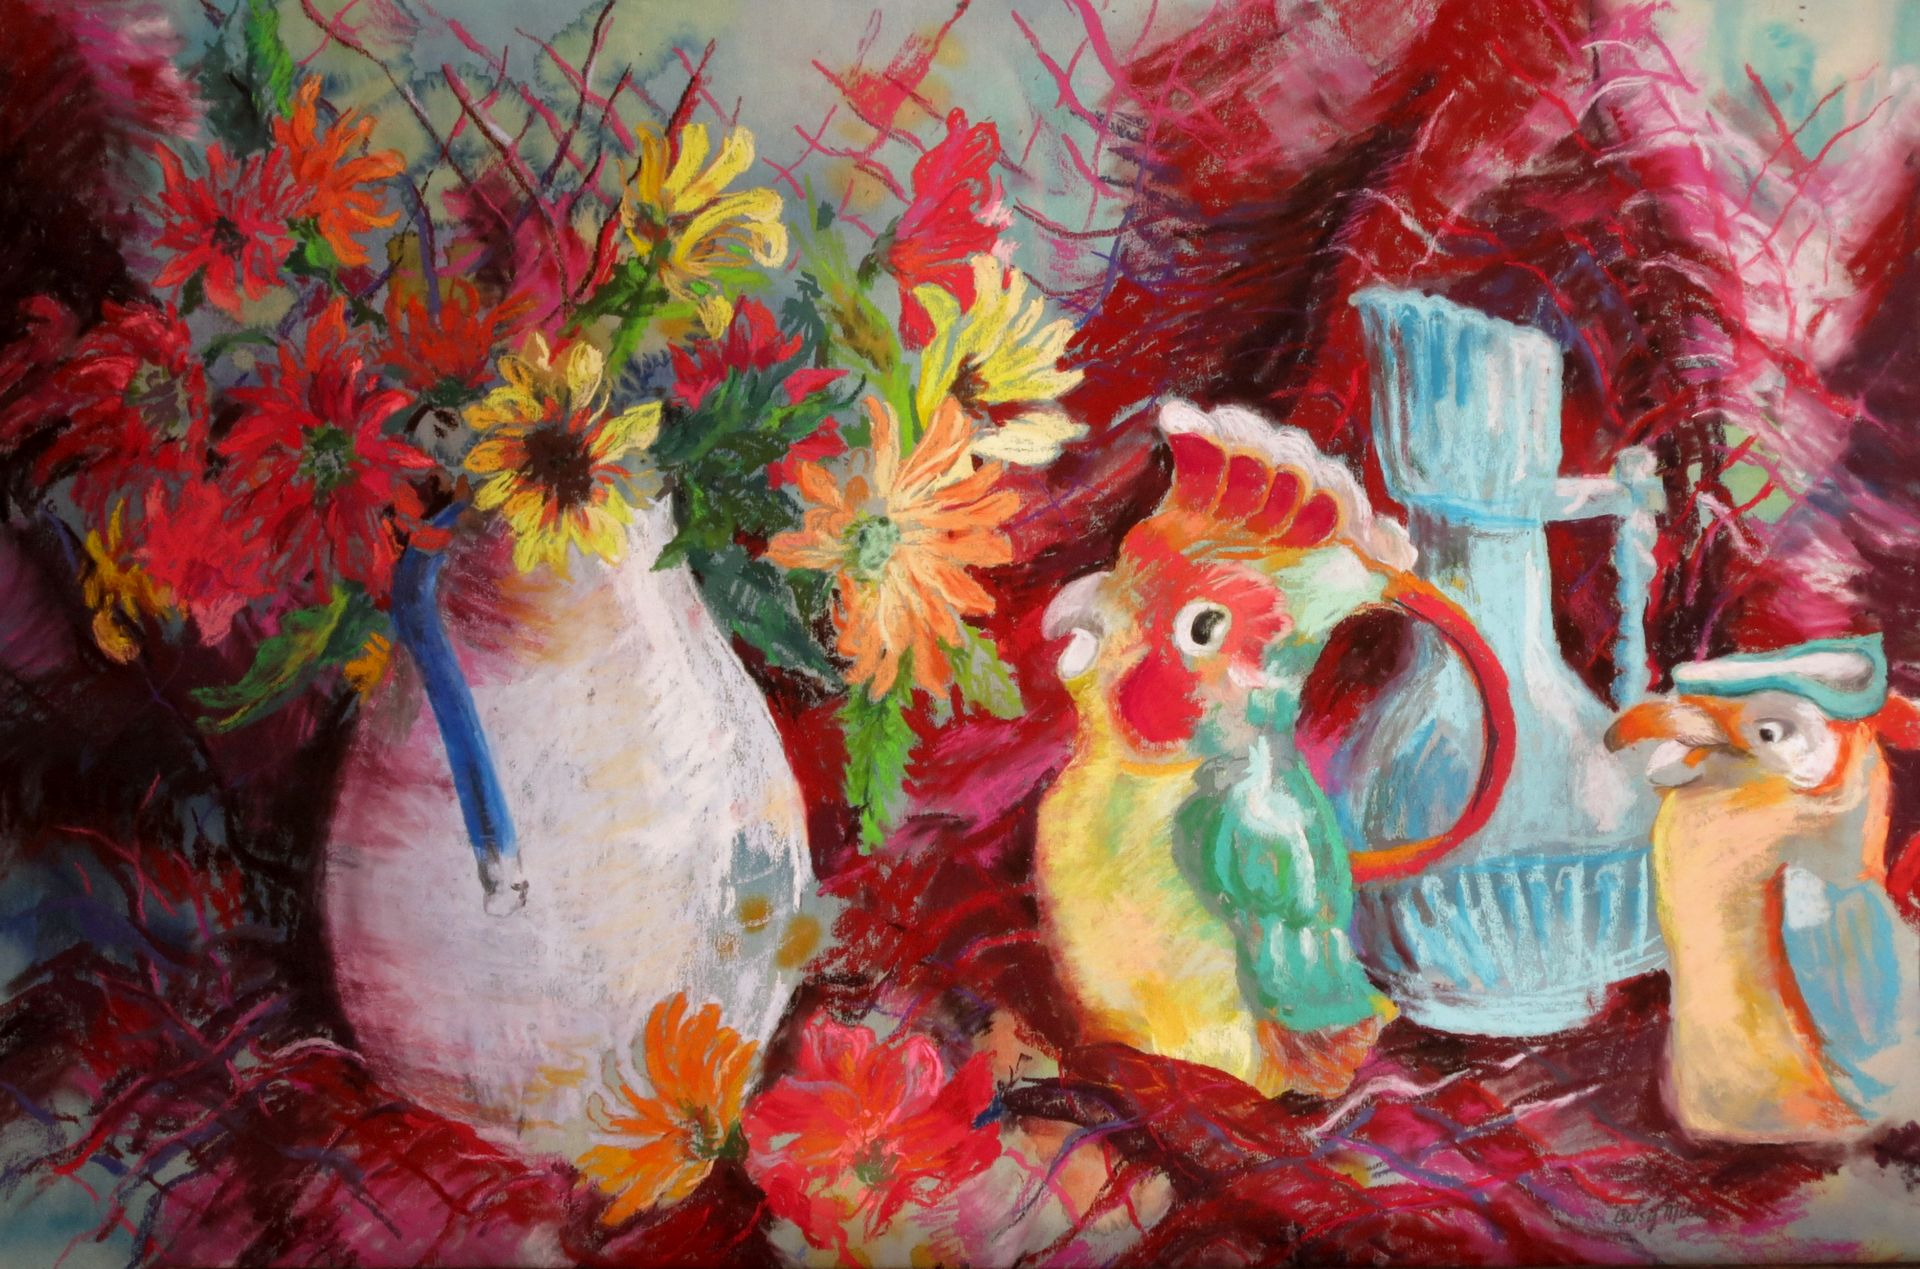 Pitcher Parade by Betsy Miller